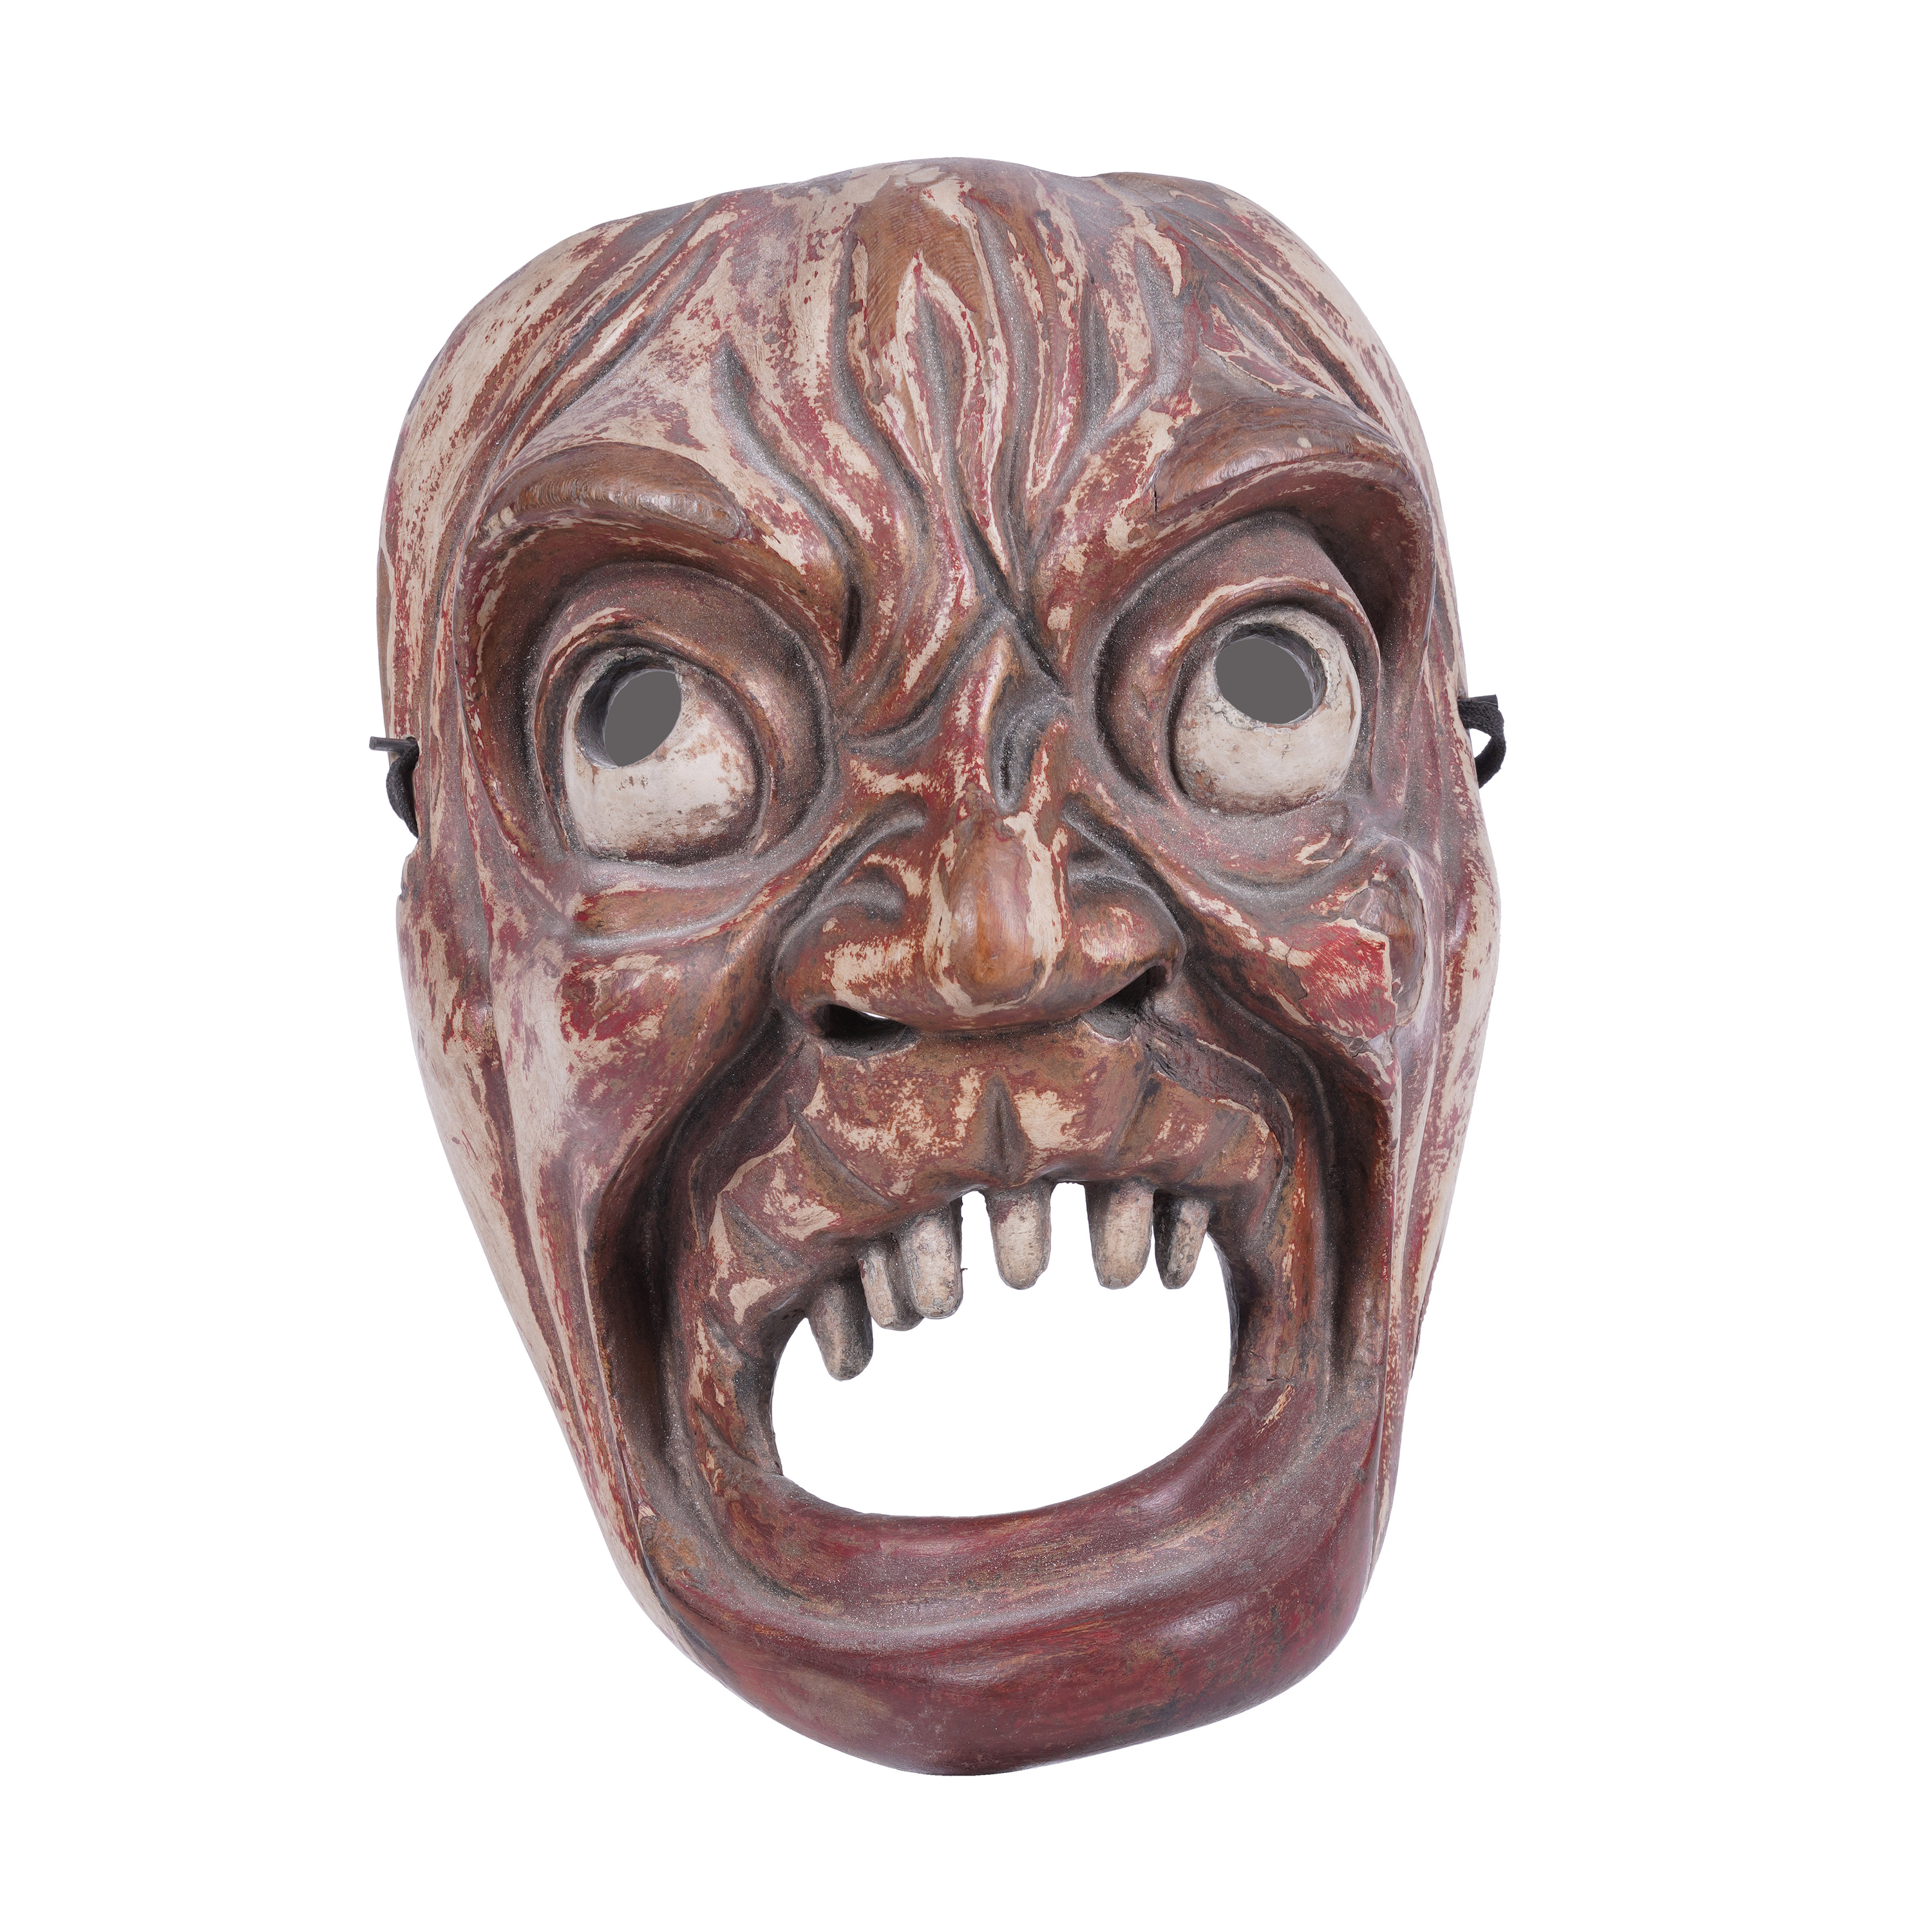 .A LACQUERED 'TOOTHLESS' WOODEN MASK Japan, 19th century H: 22 cm - w: 16 cm Provenance: A curated